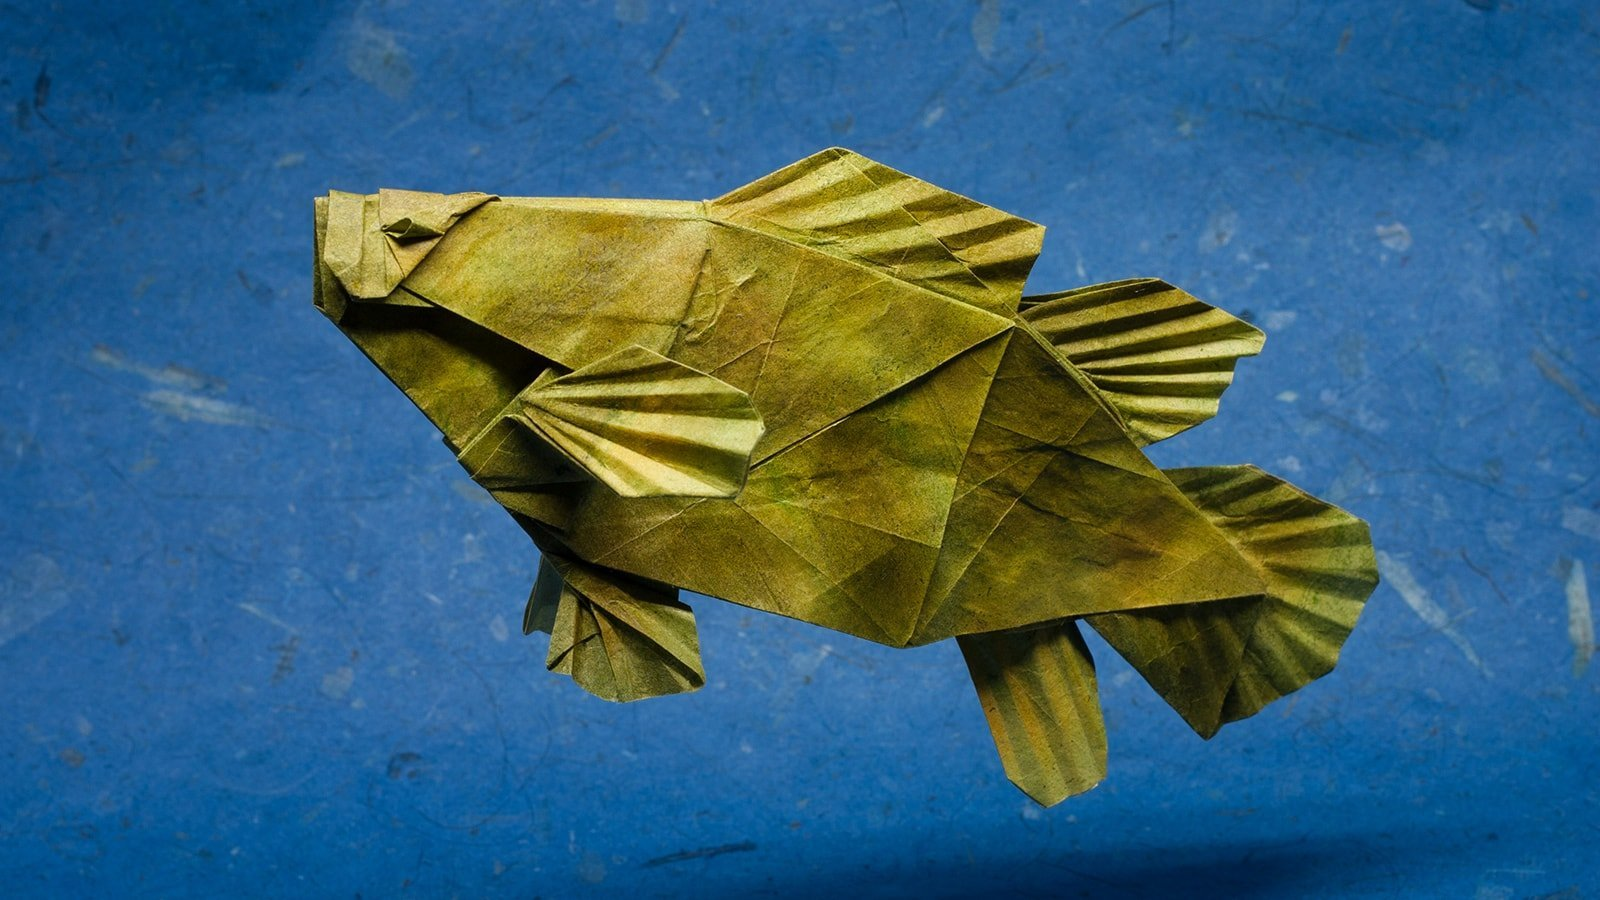 Magnificent Origami Sharks To Celebrate Shark Awareness Day Diagram Grouper